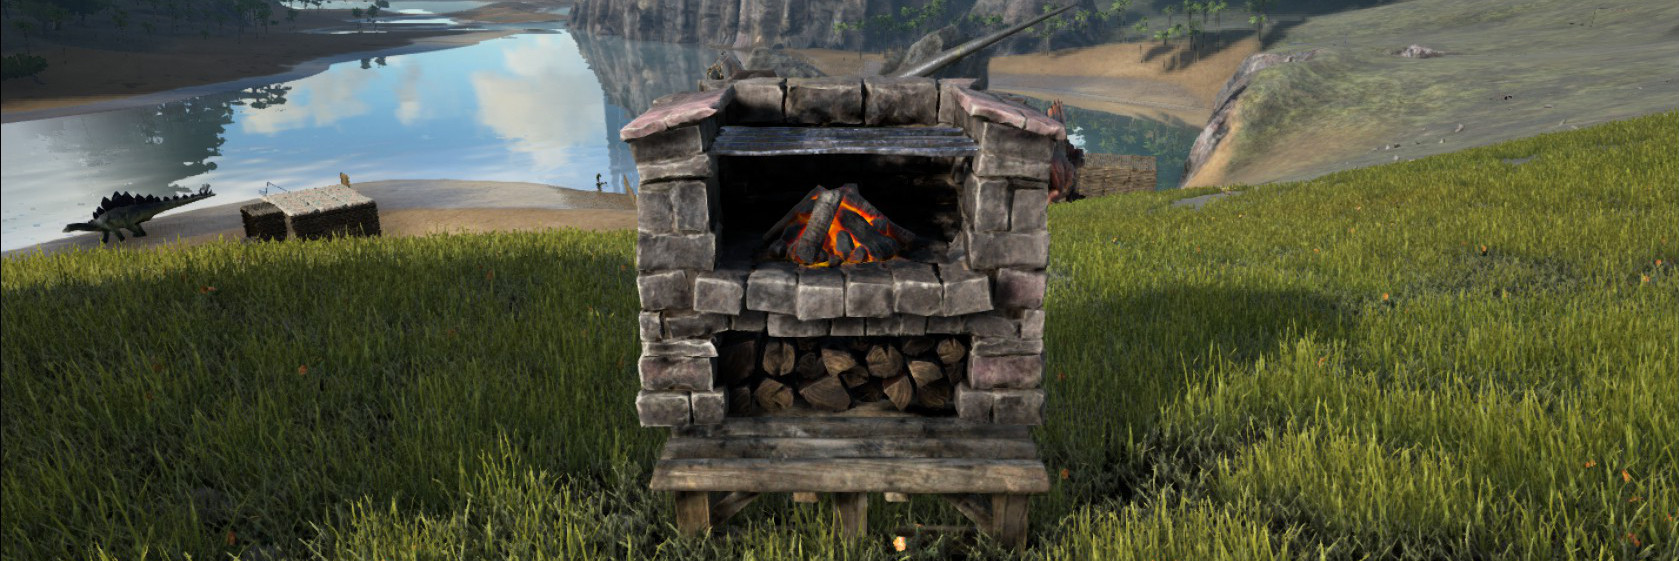 Item Spotlight: Industrial Grill